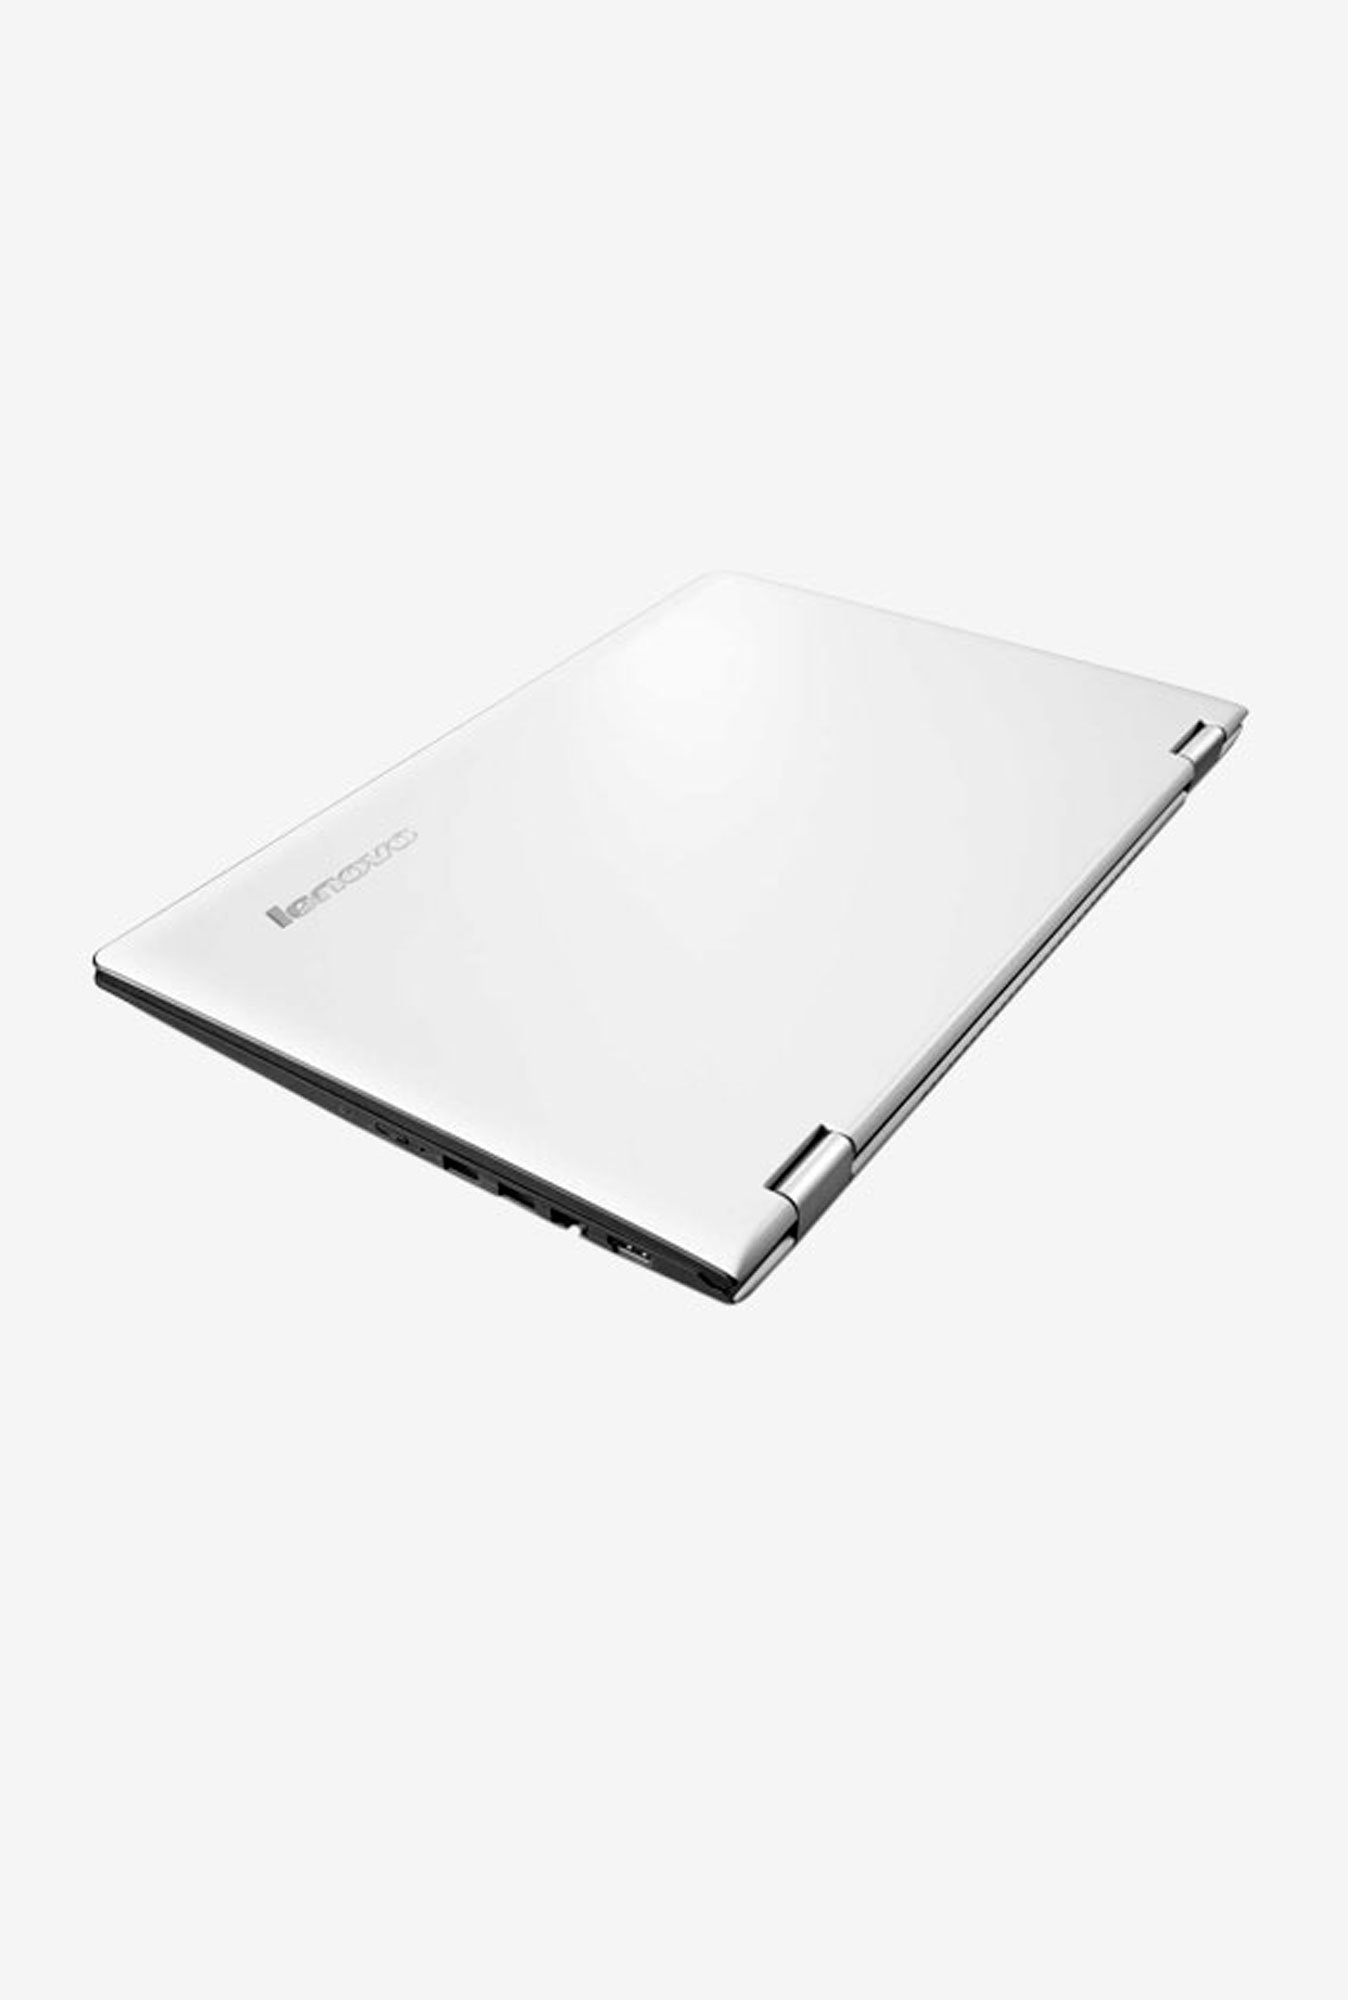 Lenovo Yoga 500 5th Gen Intel Core i5 14 Inch Laptop (White)